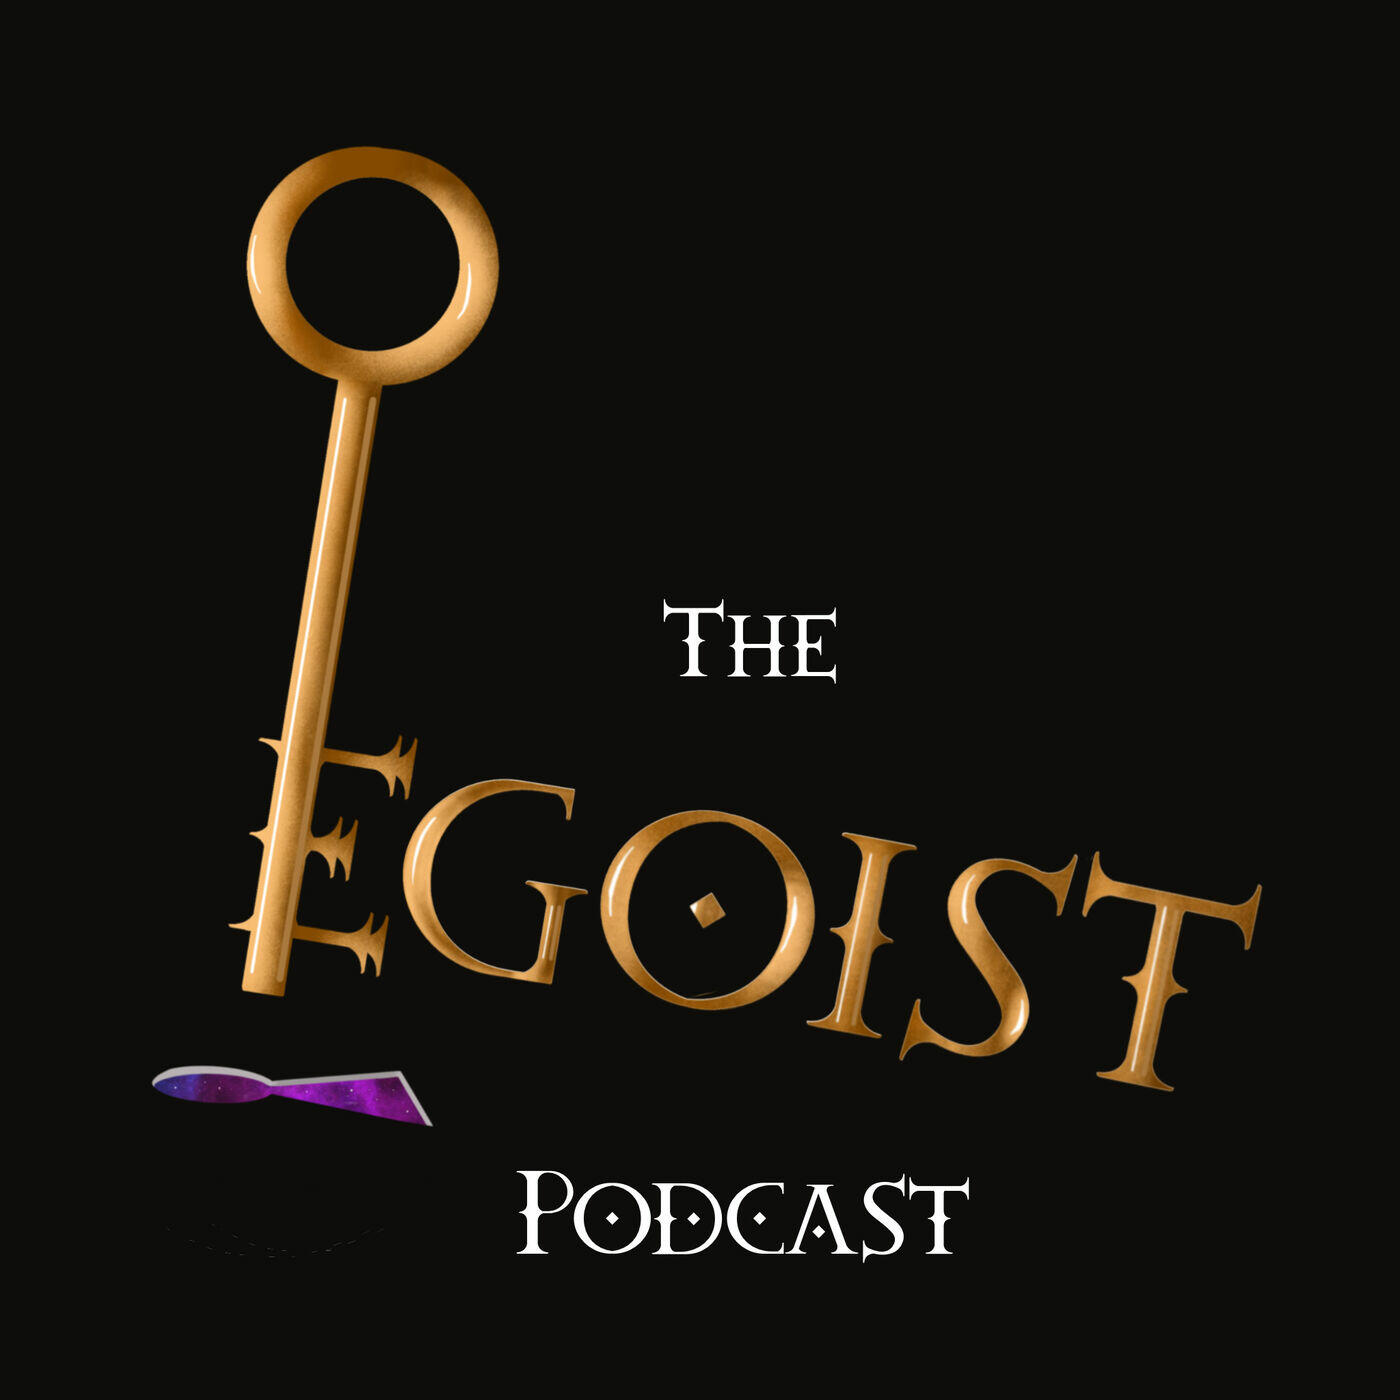 The Egoist Podcast